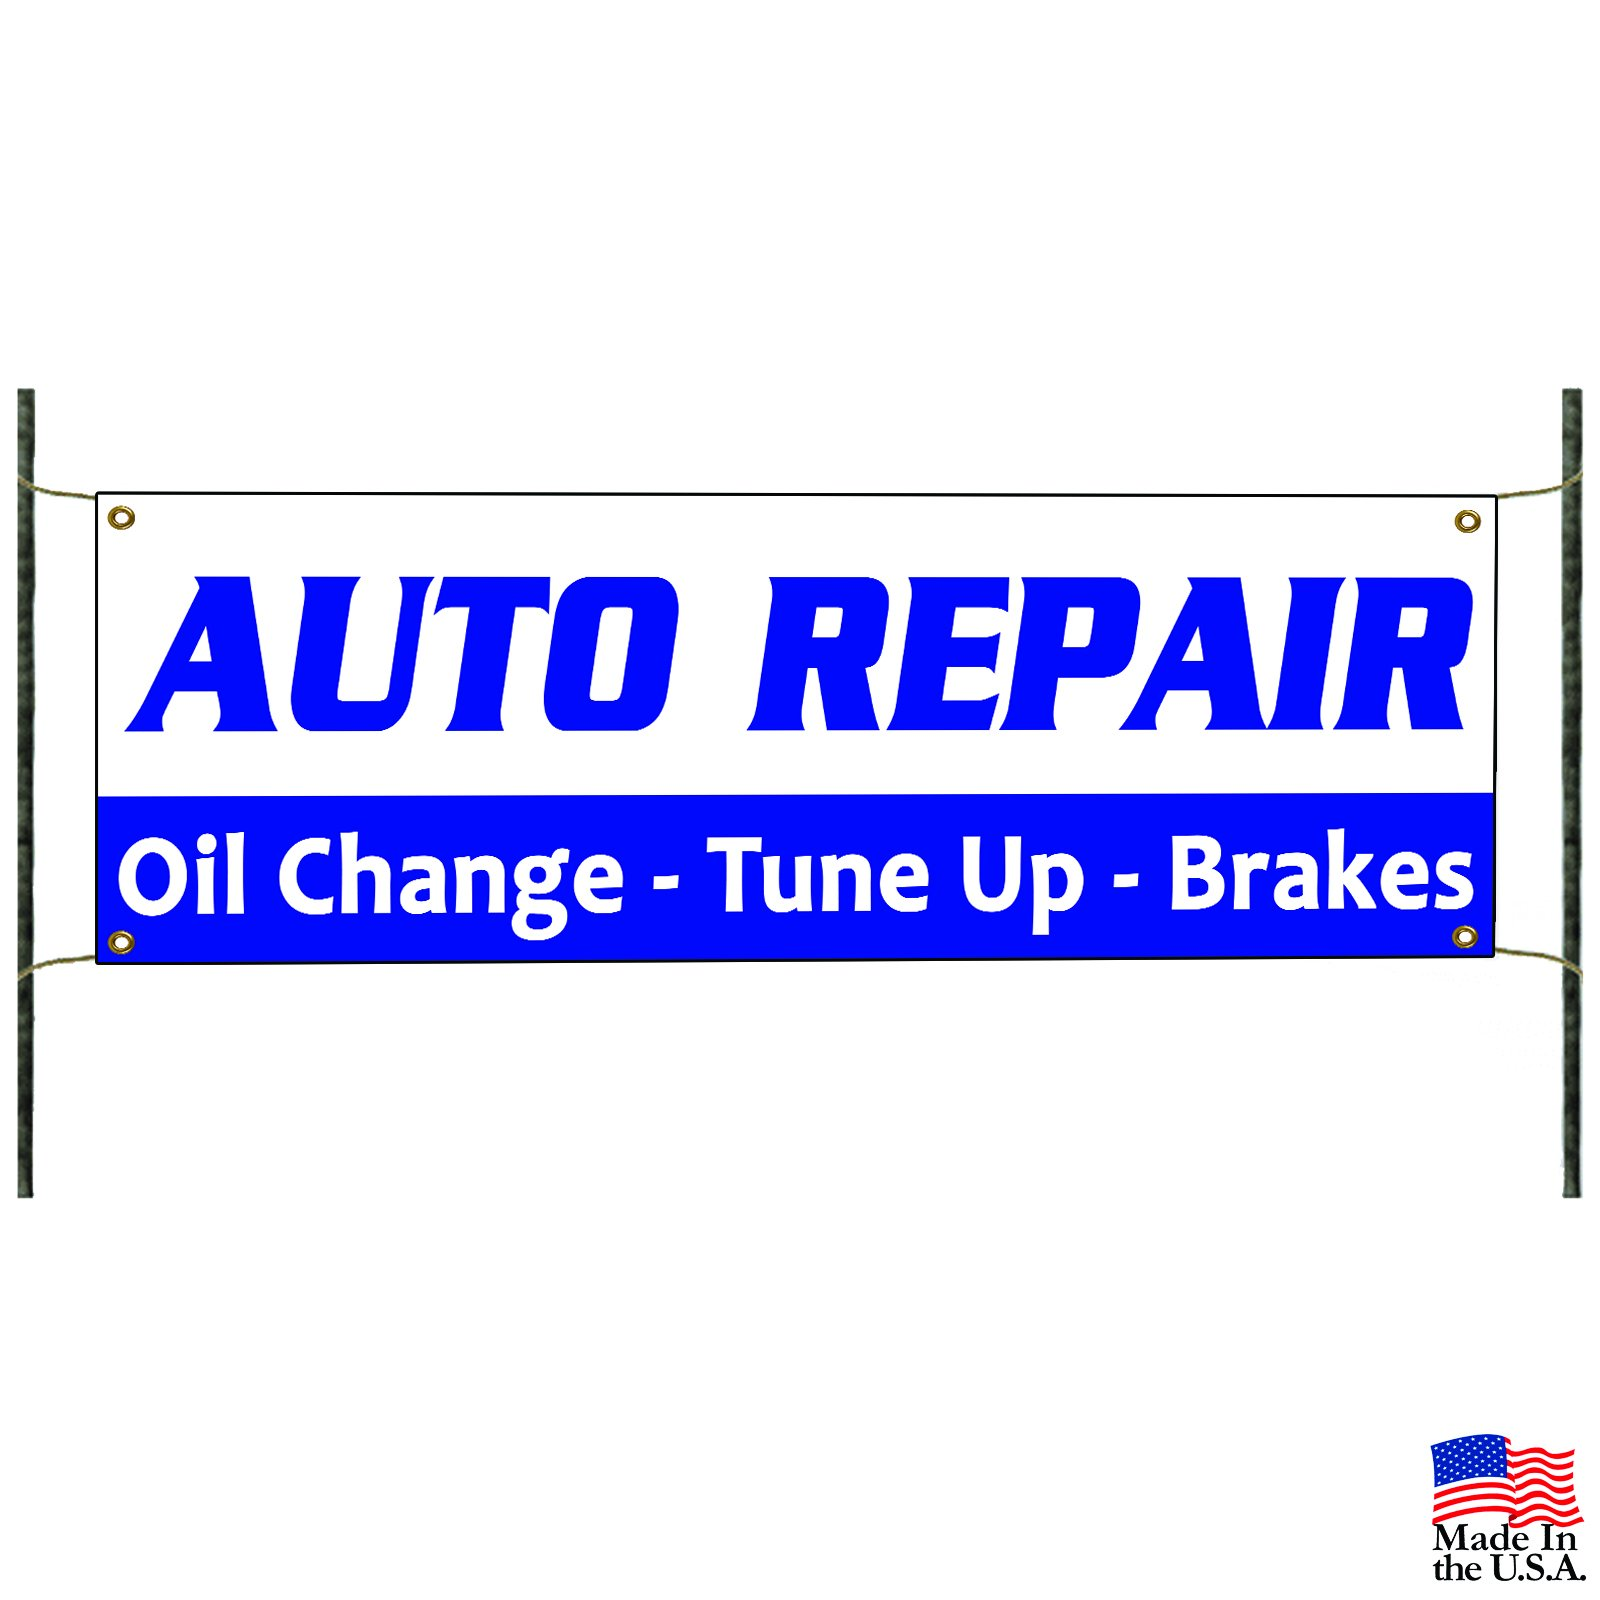 Auto Repair Oil Change Tune Up Brakes Promotion Advertising Vinyl Banner Sign by Afterprints